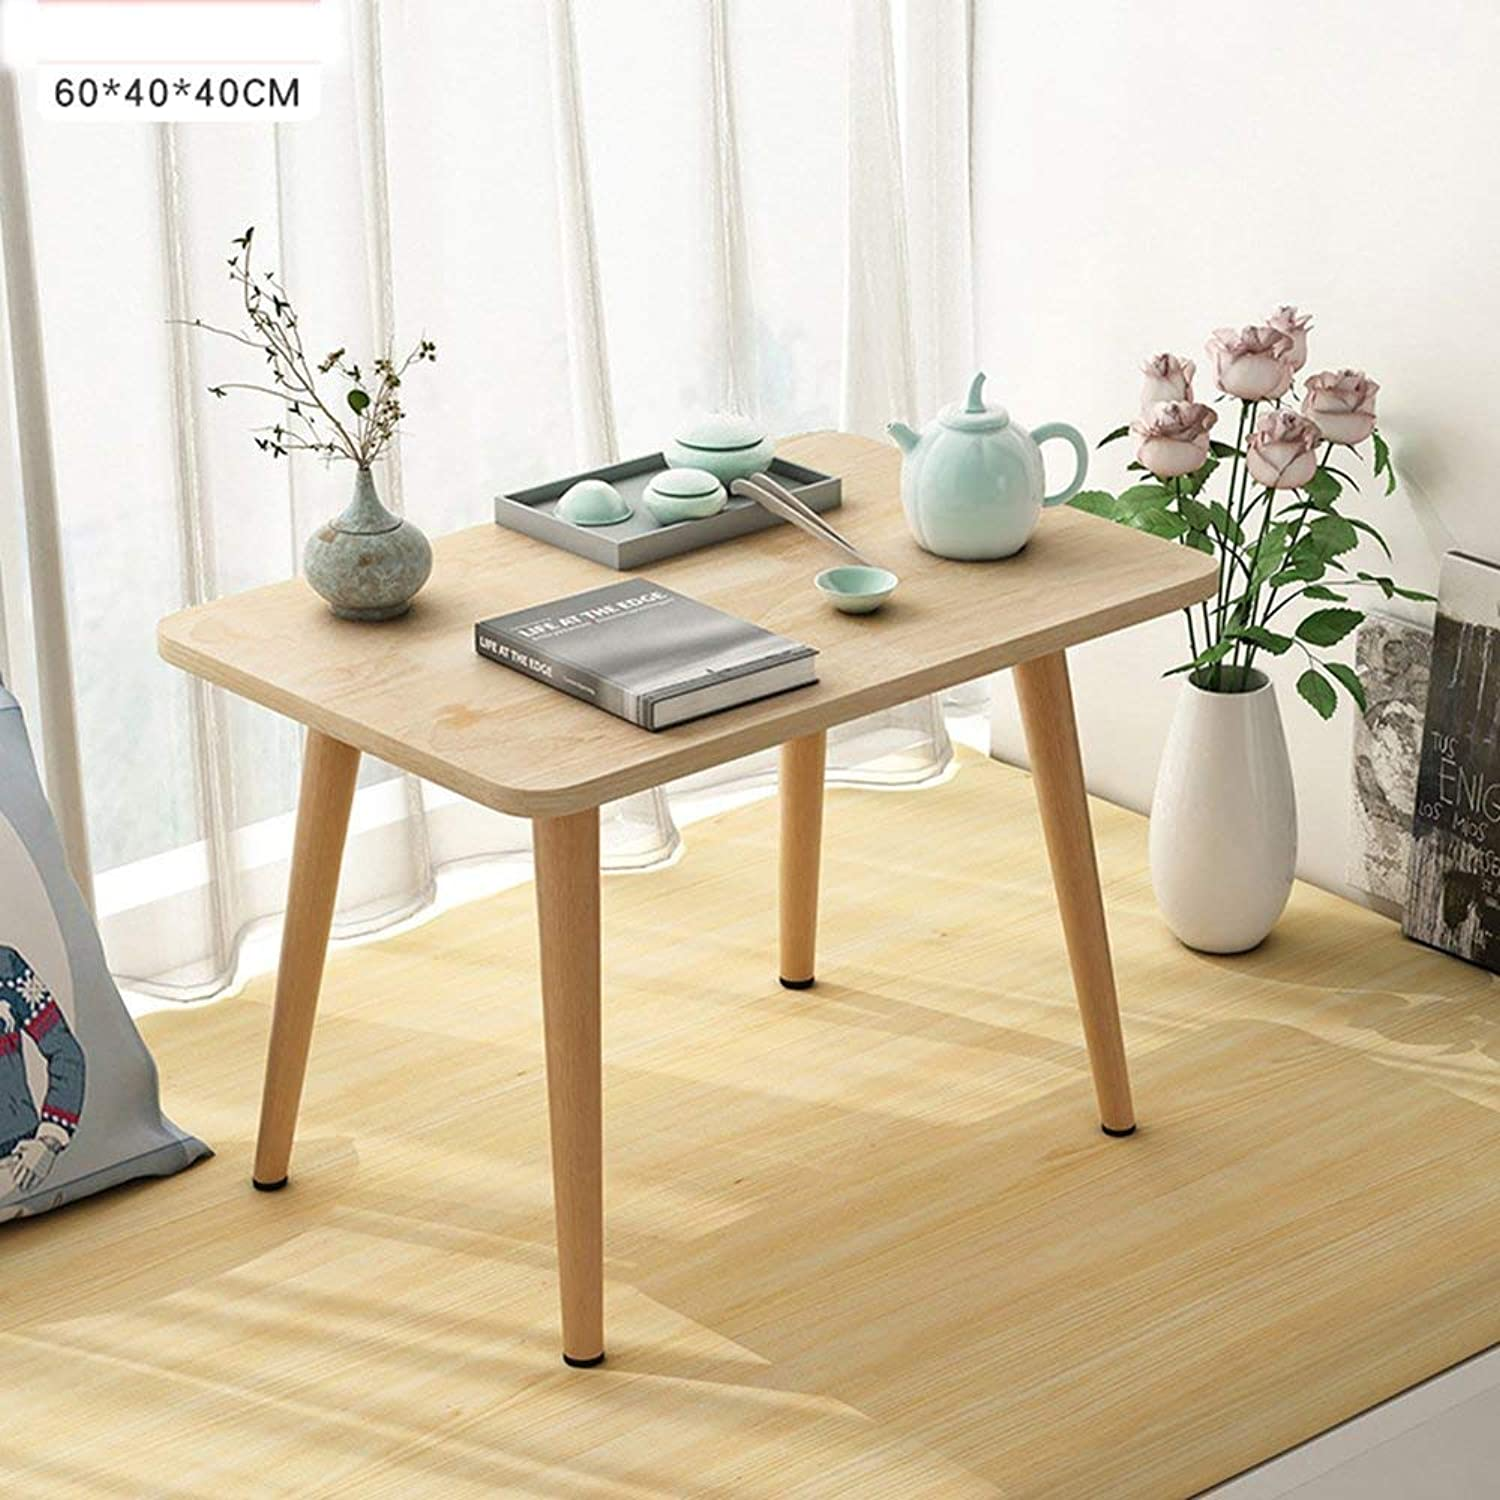 Home Practical Folding Table Multifunction Small Table Household Side Wood Dining Natural Mini Tea Bedroom Simple Study Table (color   48  38  28cm)